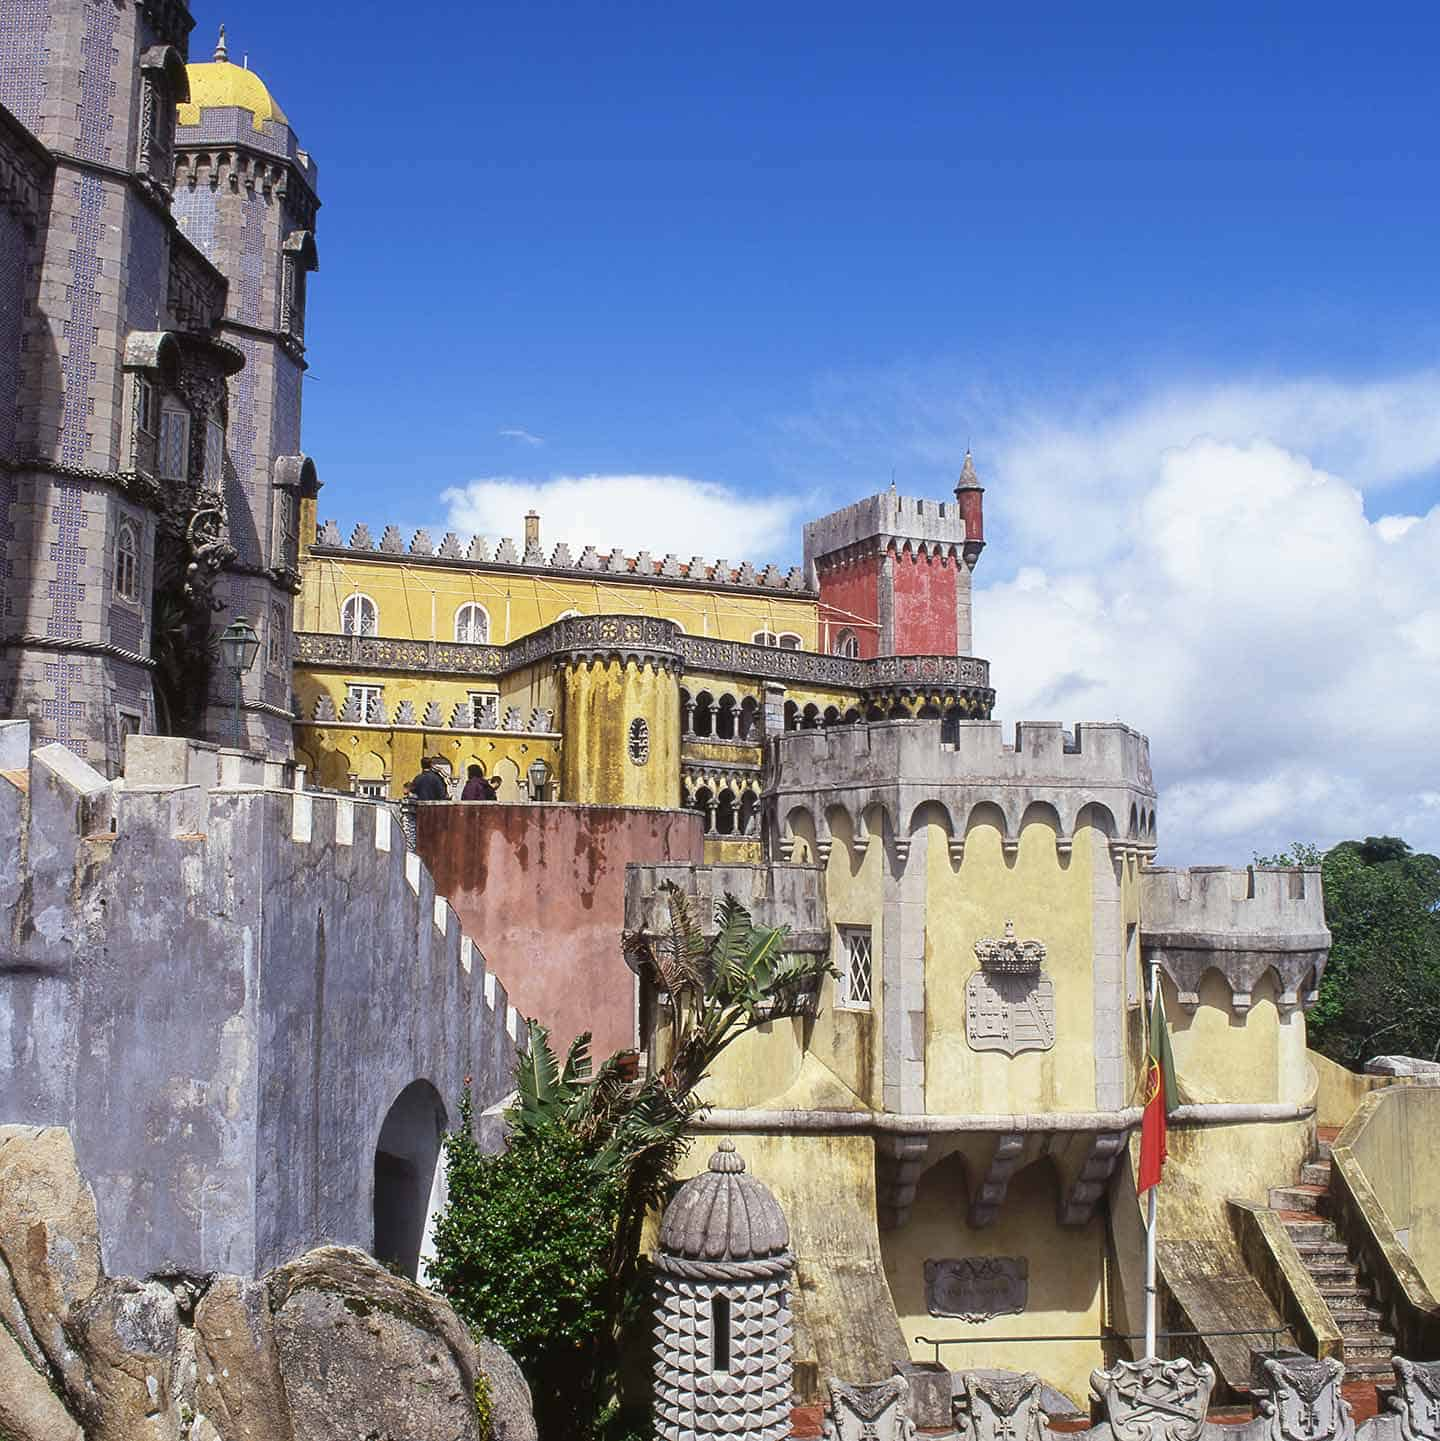 Image of the Palacio da Pena in Sintra, Portugal